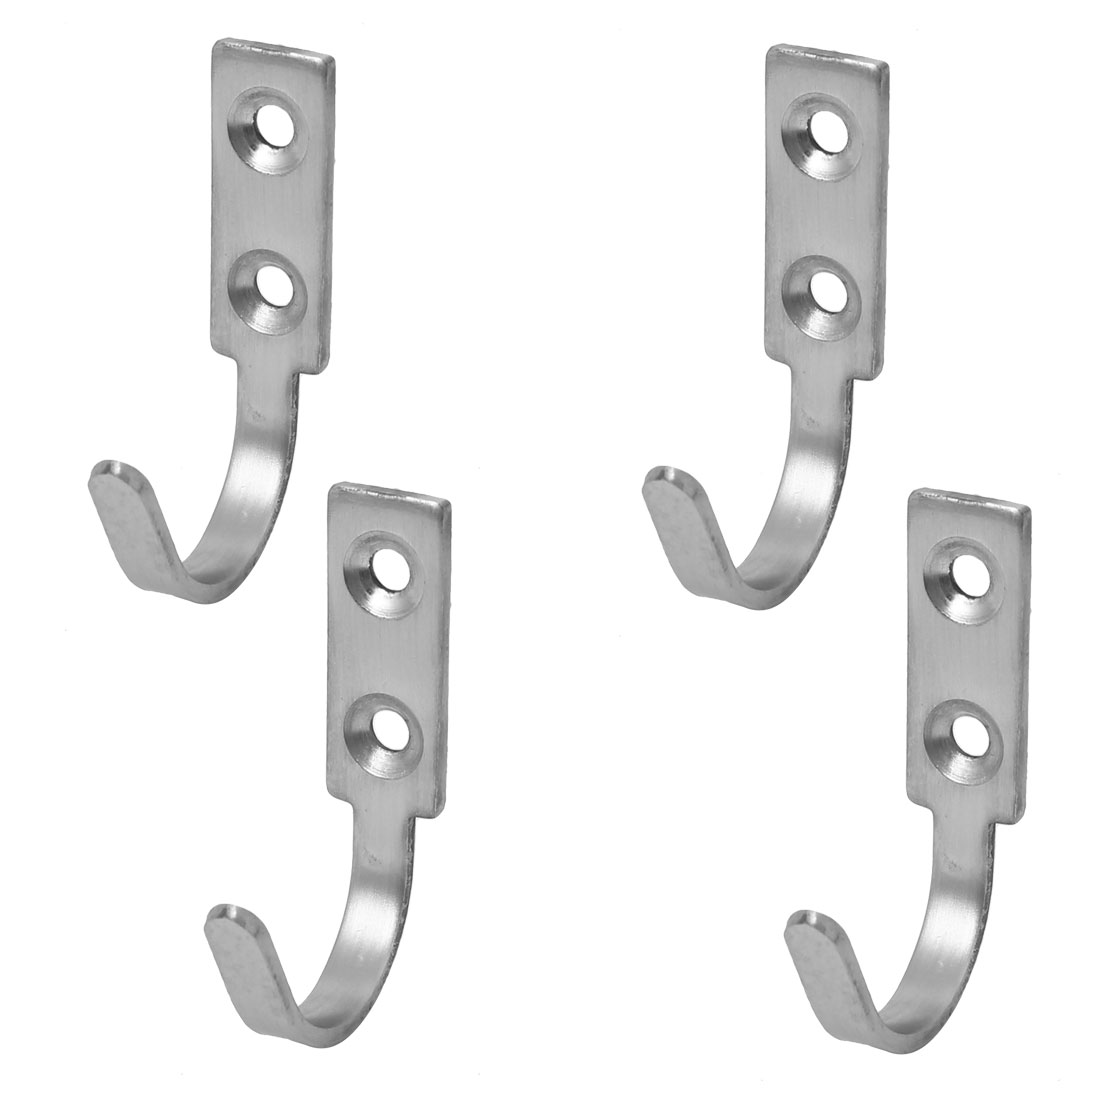 Door Wall Mounted Single Hook Clothes Towel Hanger Holder 60mm Length 4pcs